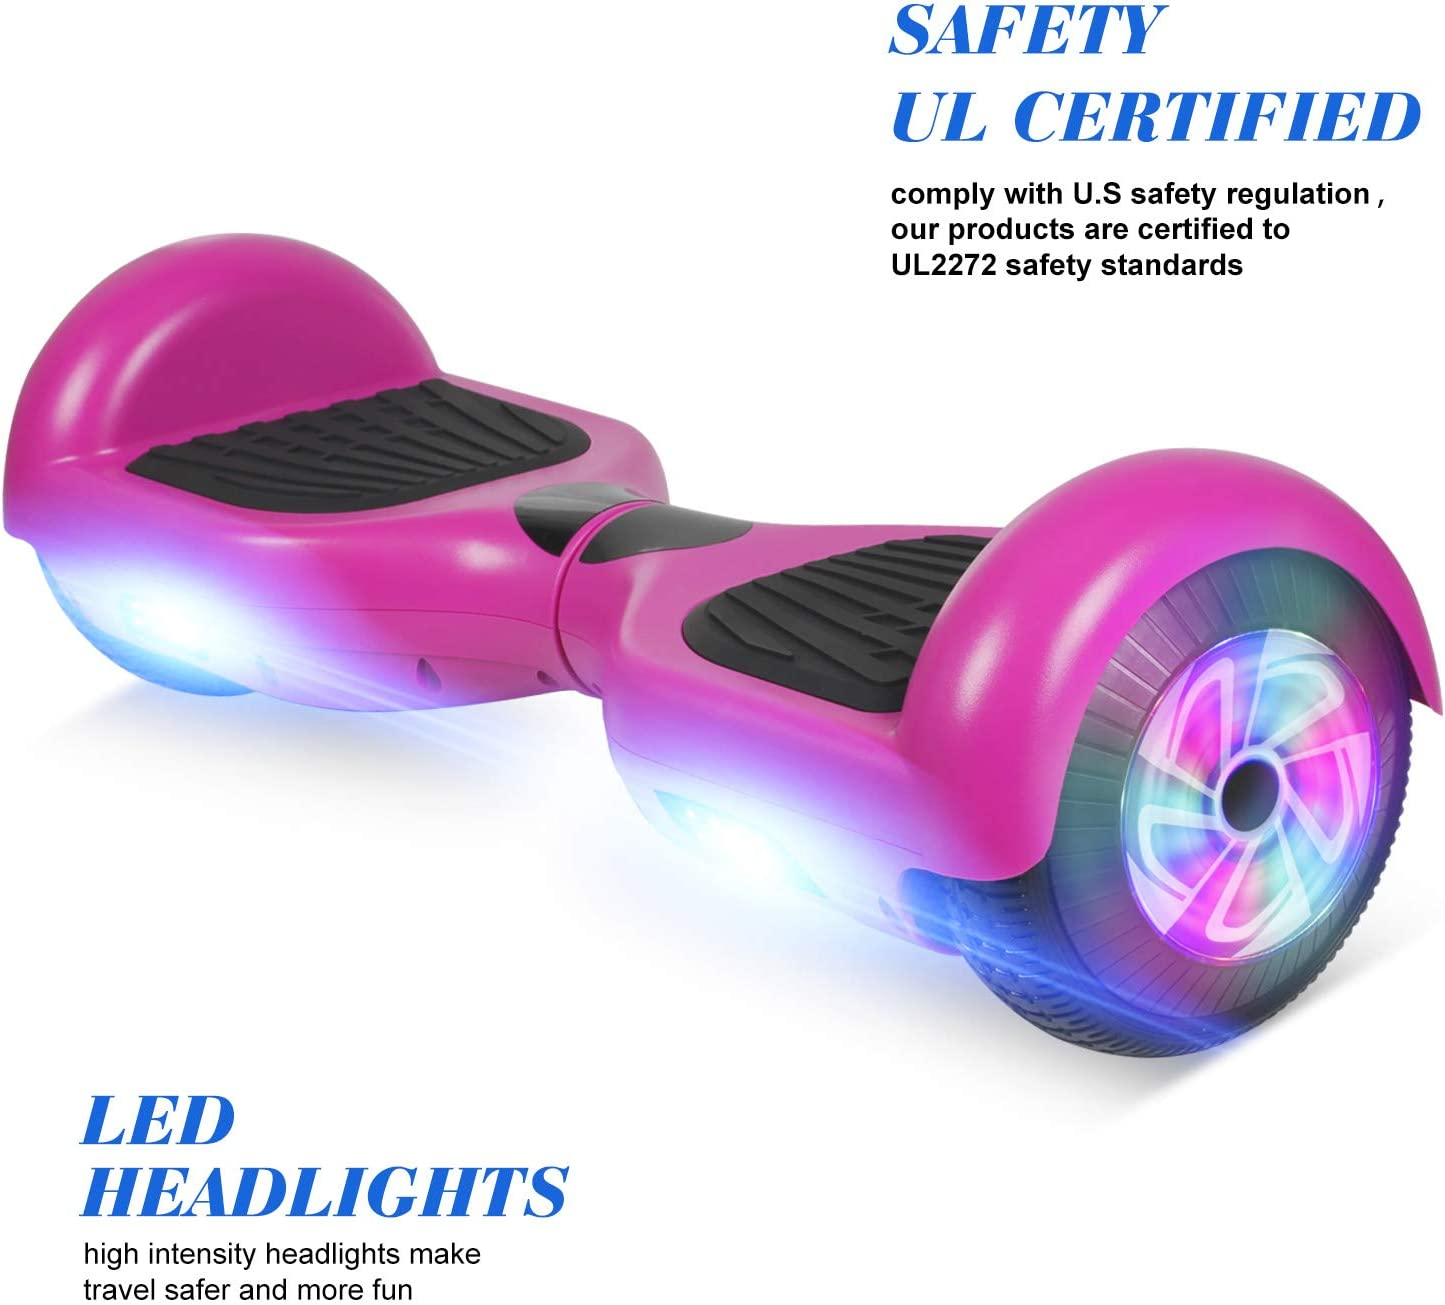 FLYING-ANT Hoverboard, 6.5 Inch Self Balancing Hoverboards F-Purple - 2